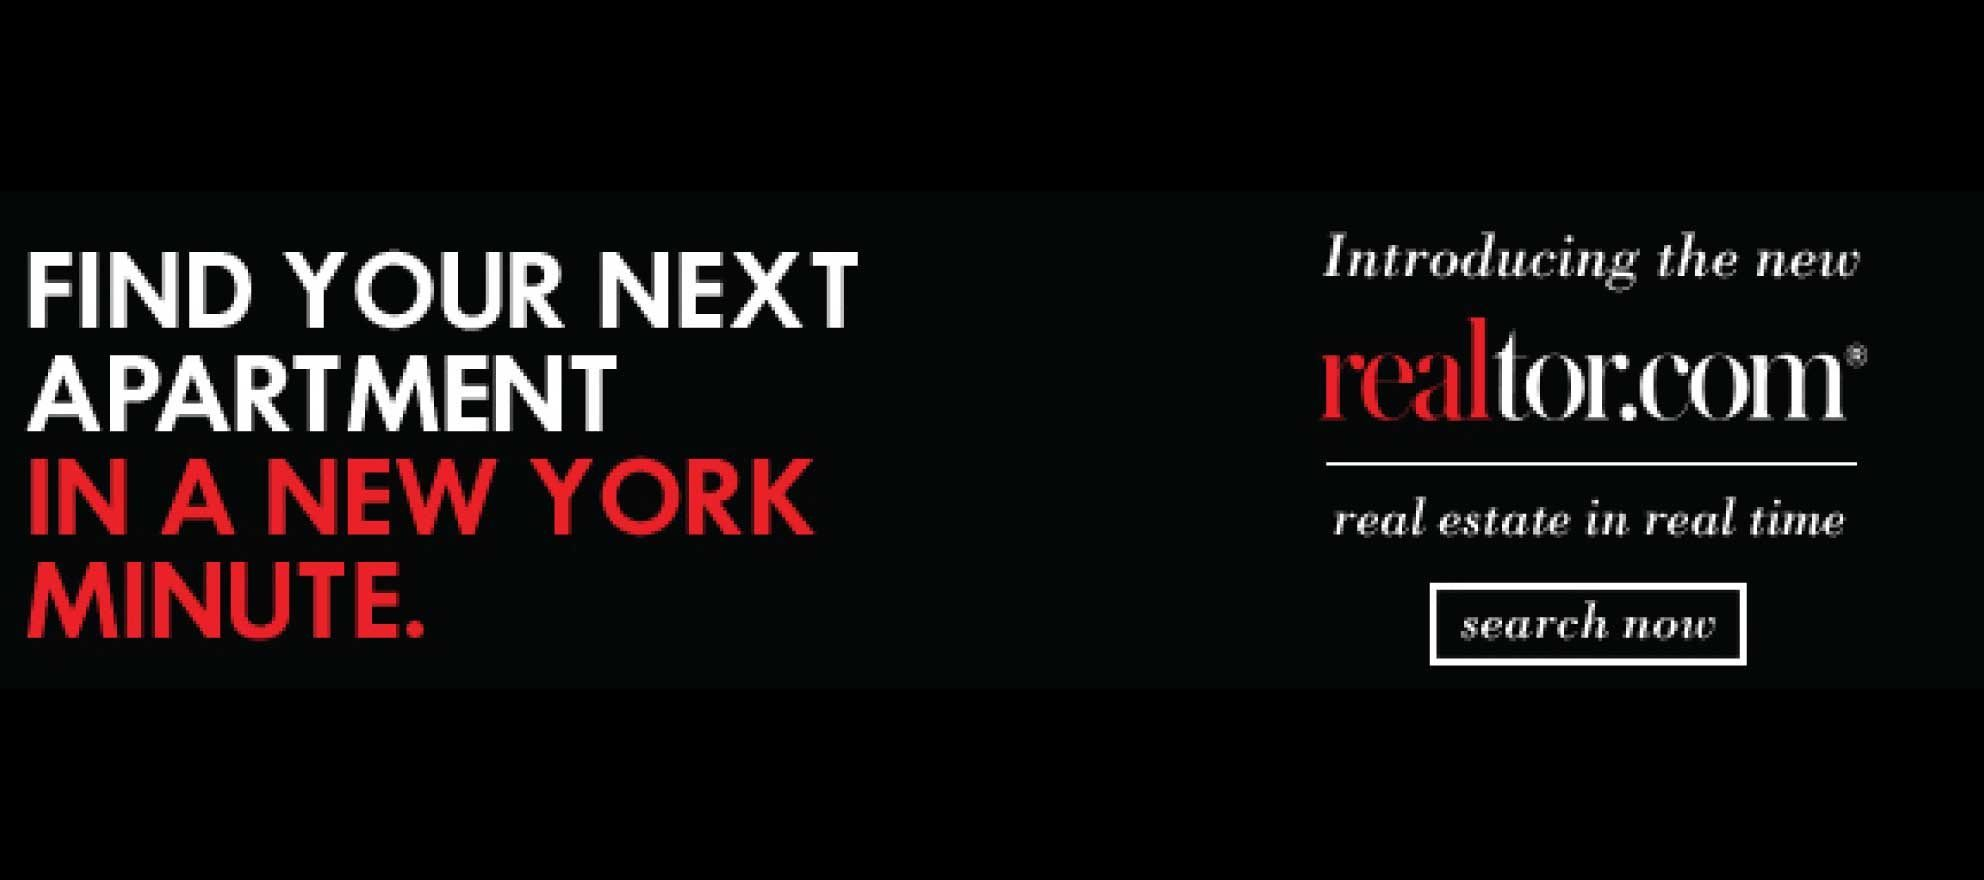 Realtor.com launches NYC ad campaign